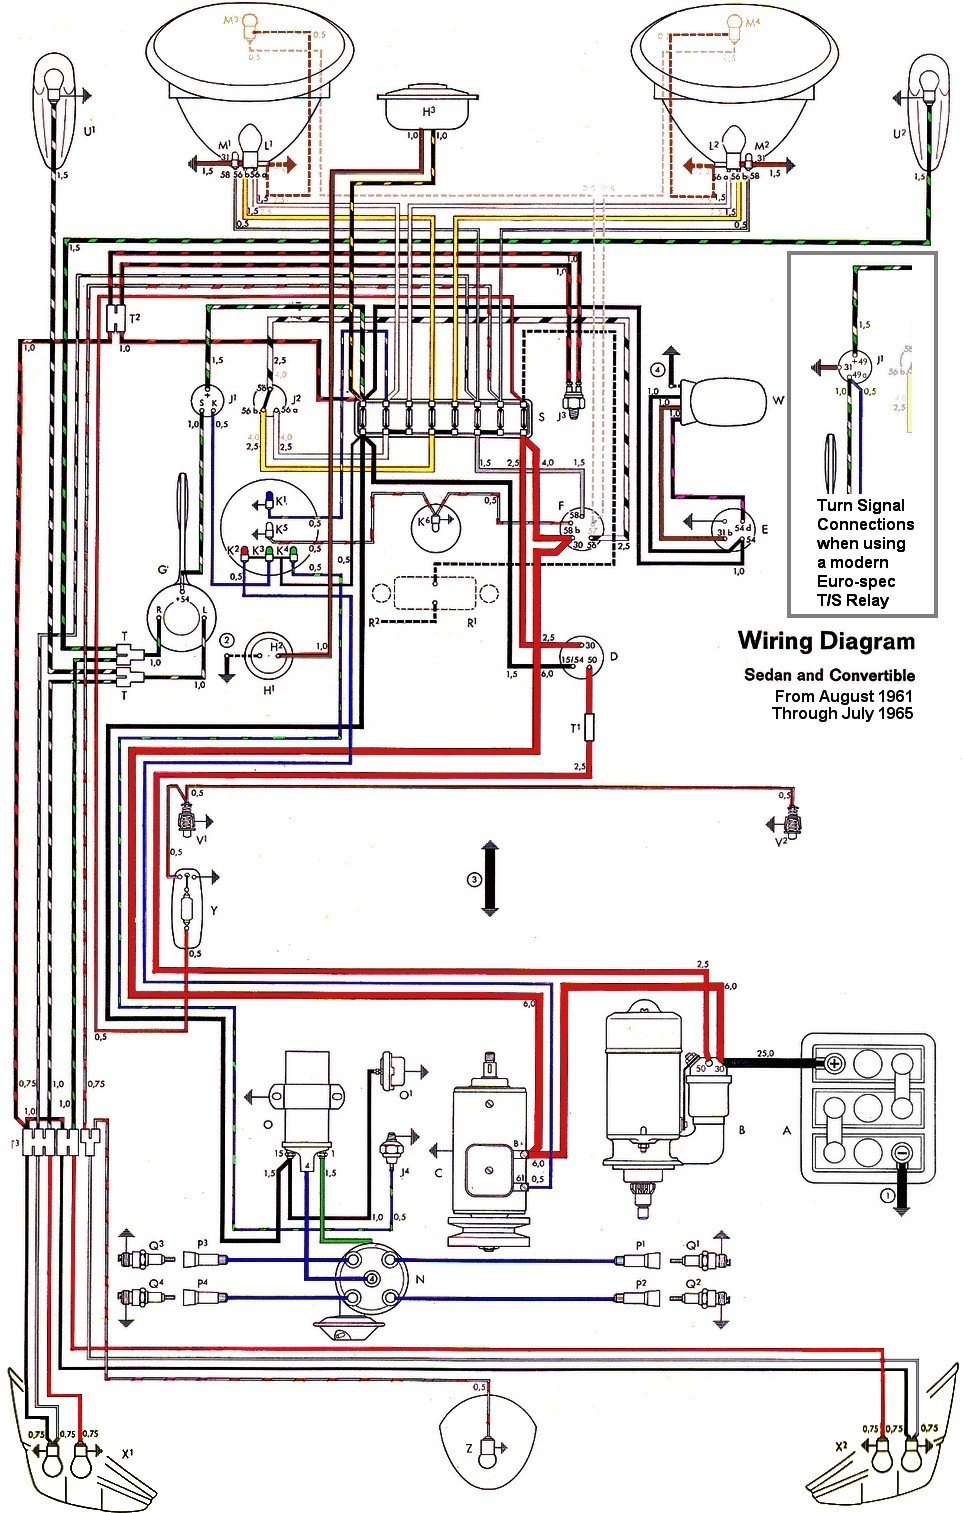 bug_62 65withinset wiring diagram vw beetle sedan and convertible 1961 1965 vw vw golf 3 electrical wiring diagram at mifinder.co